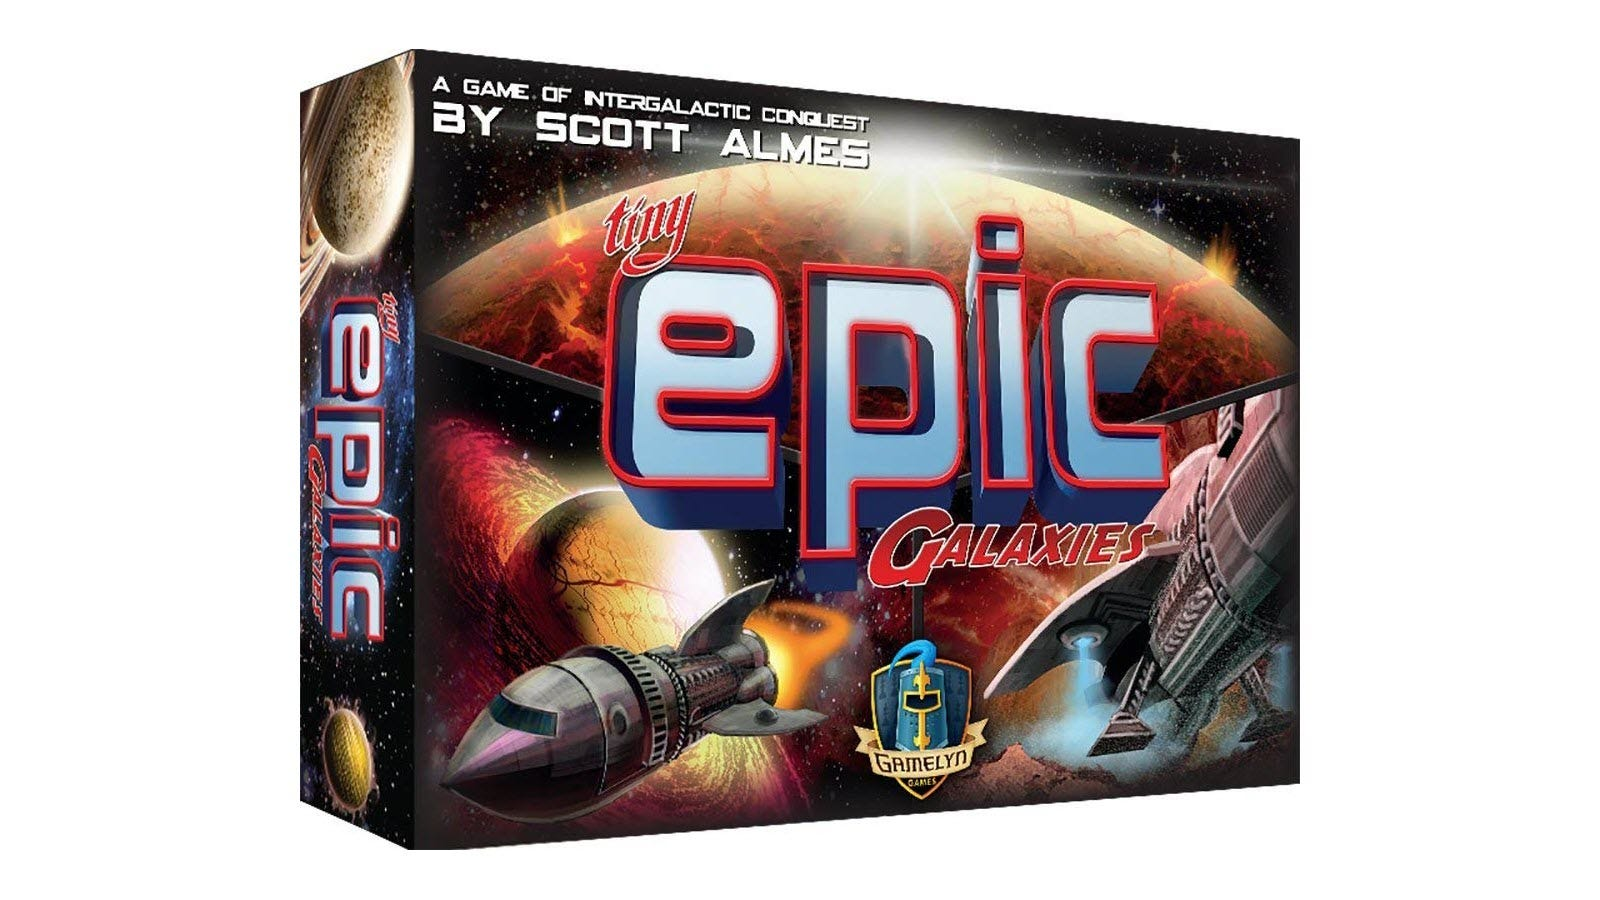 The Tiny Epic Galaxies board game box featuring spaceships and planets.